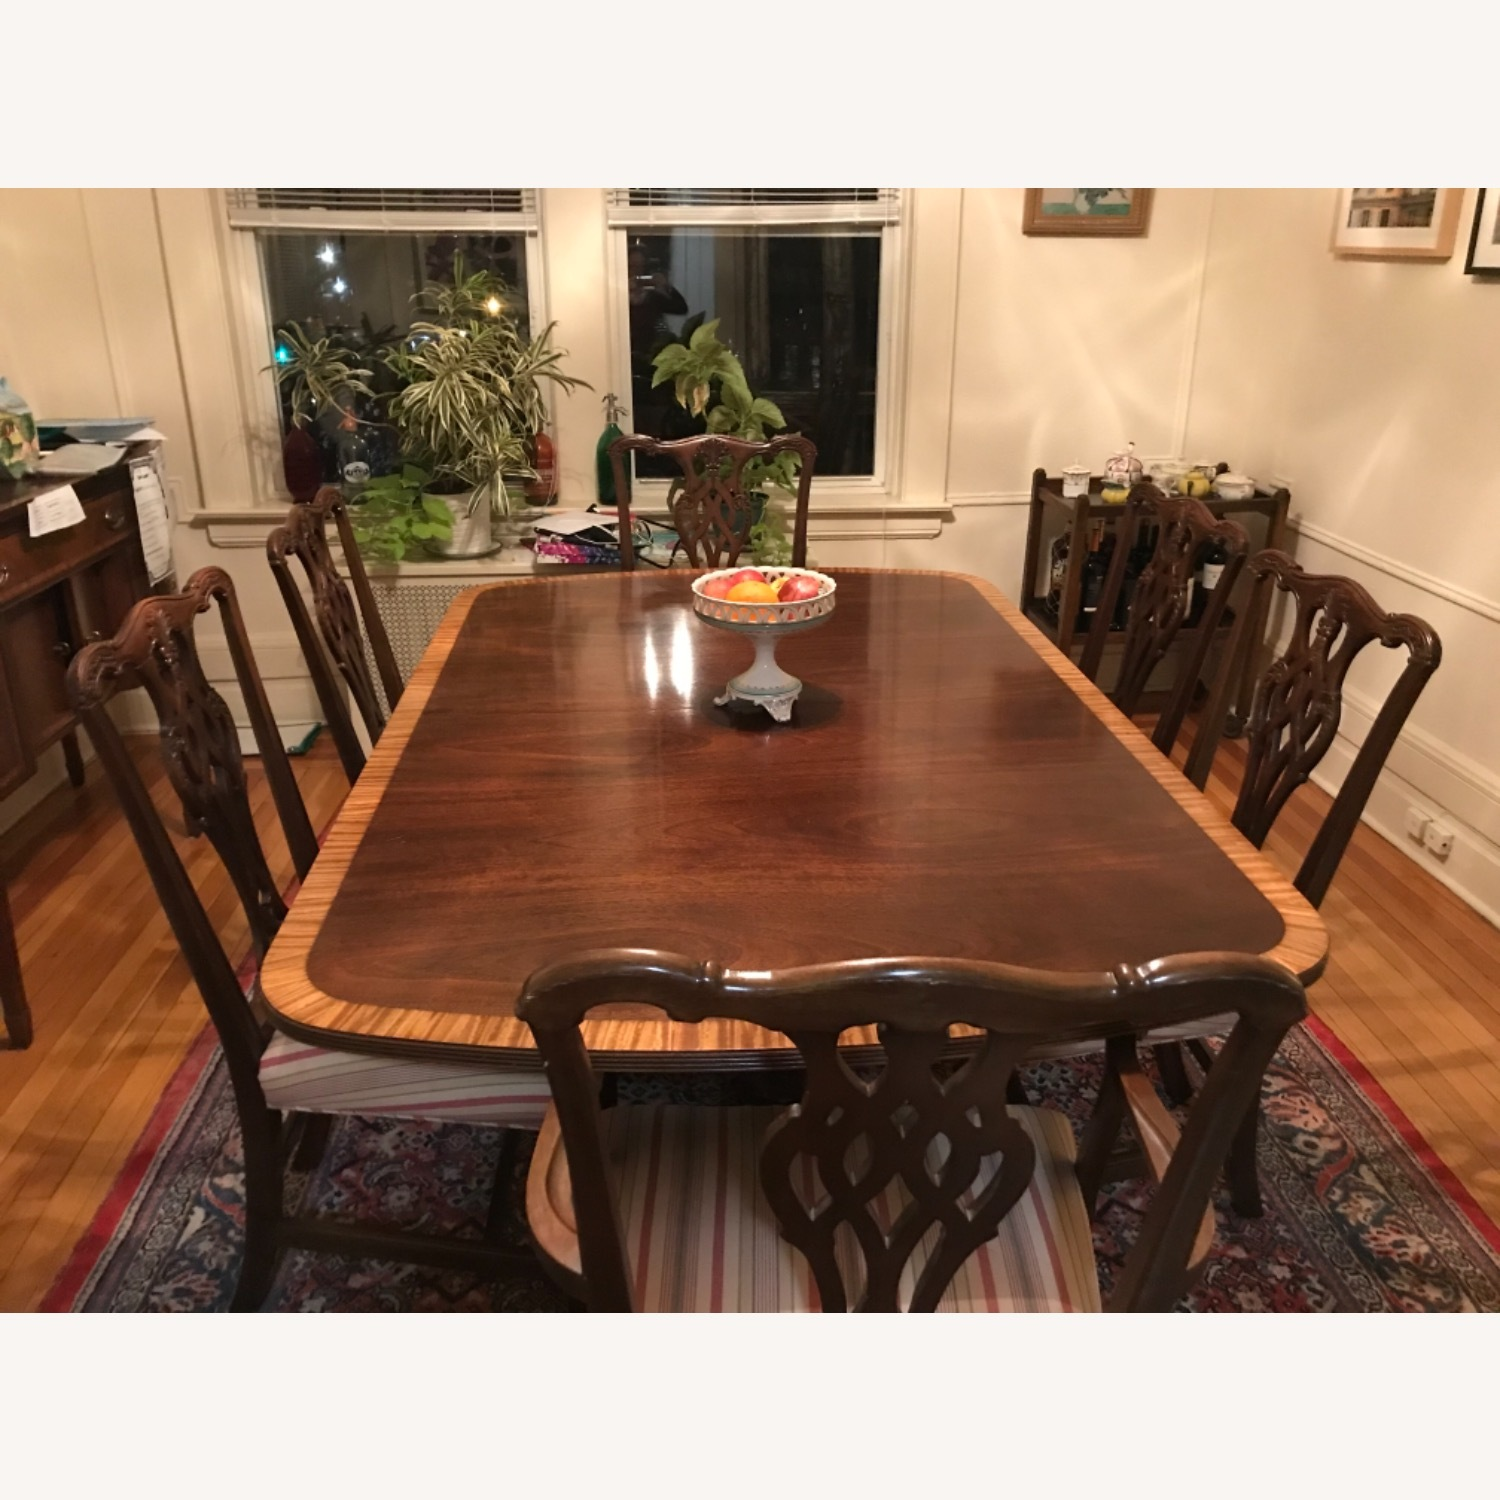 Mahogany Dining Set with 2 Leaves and 6 Chairs - image-2